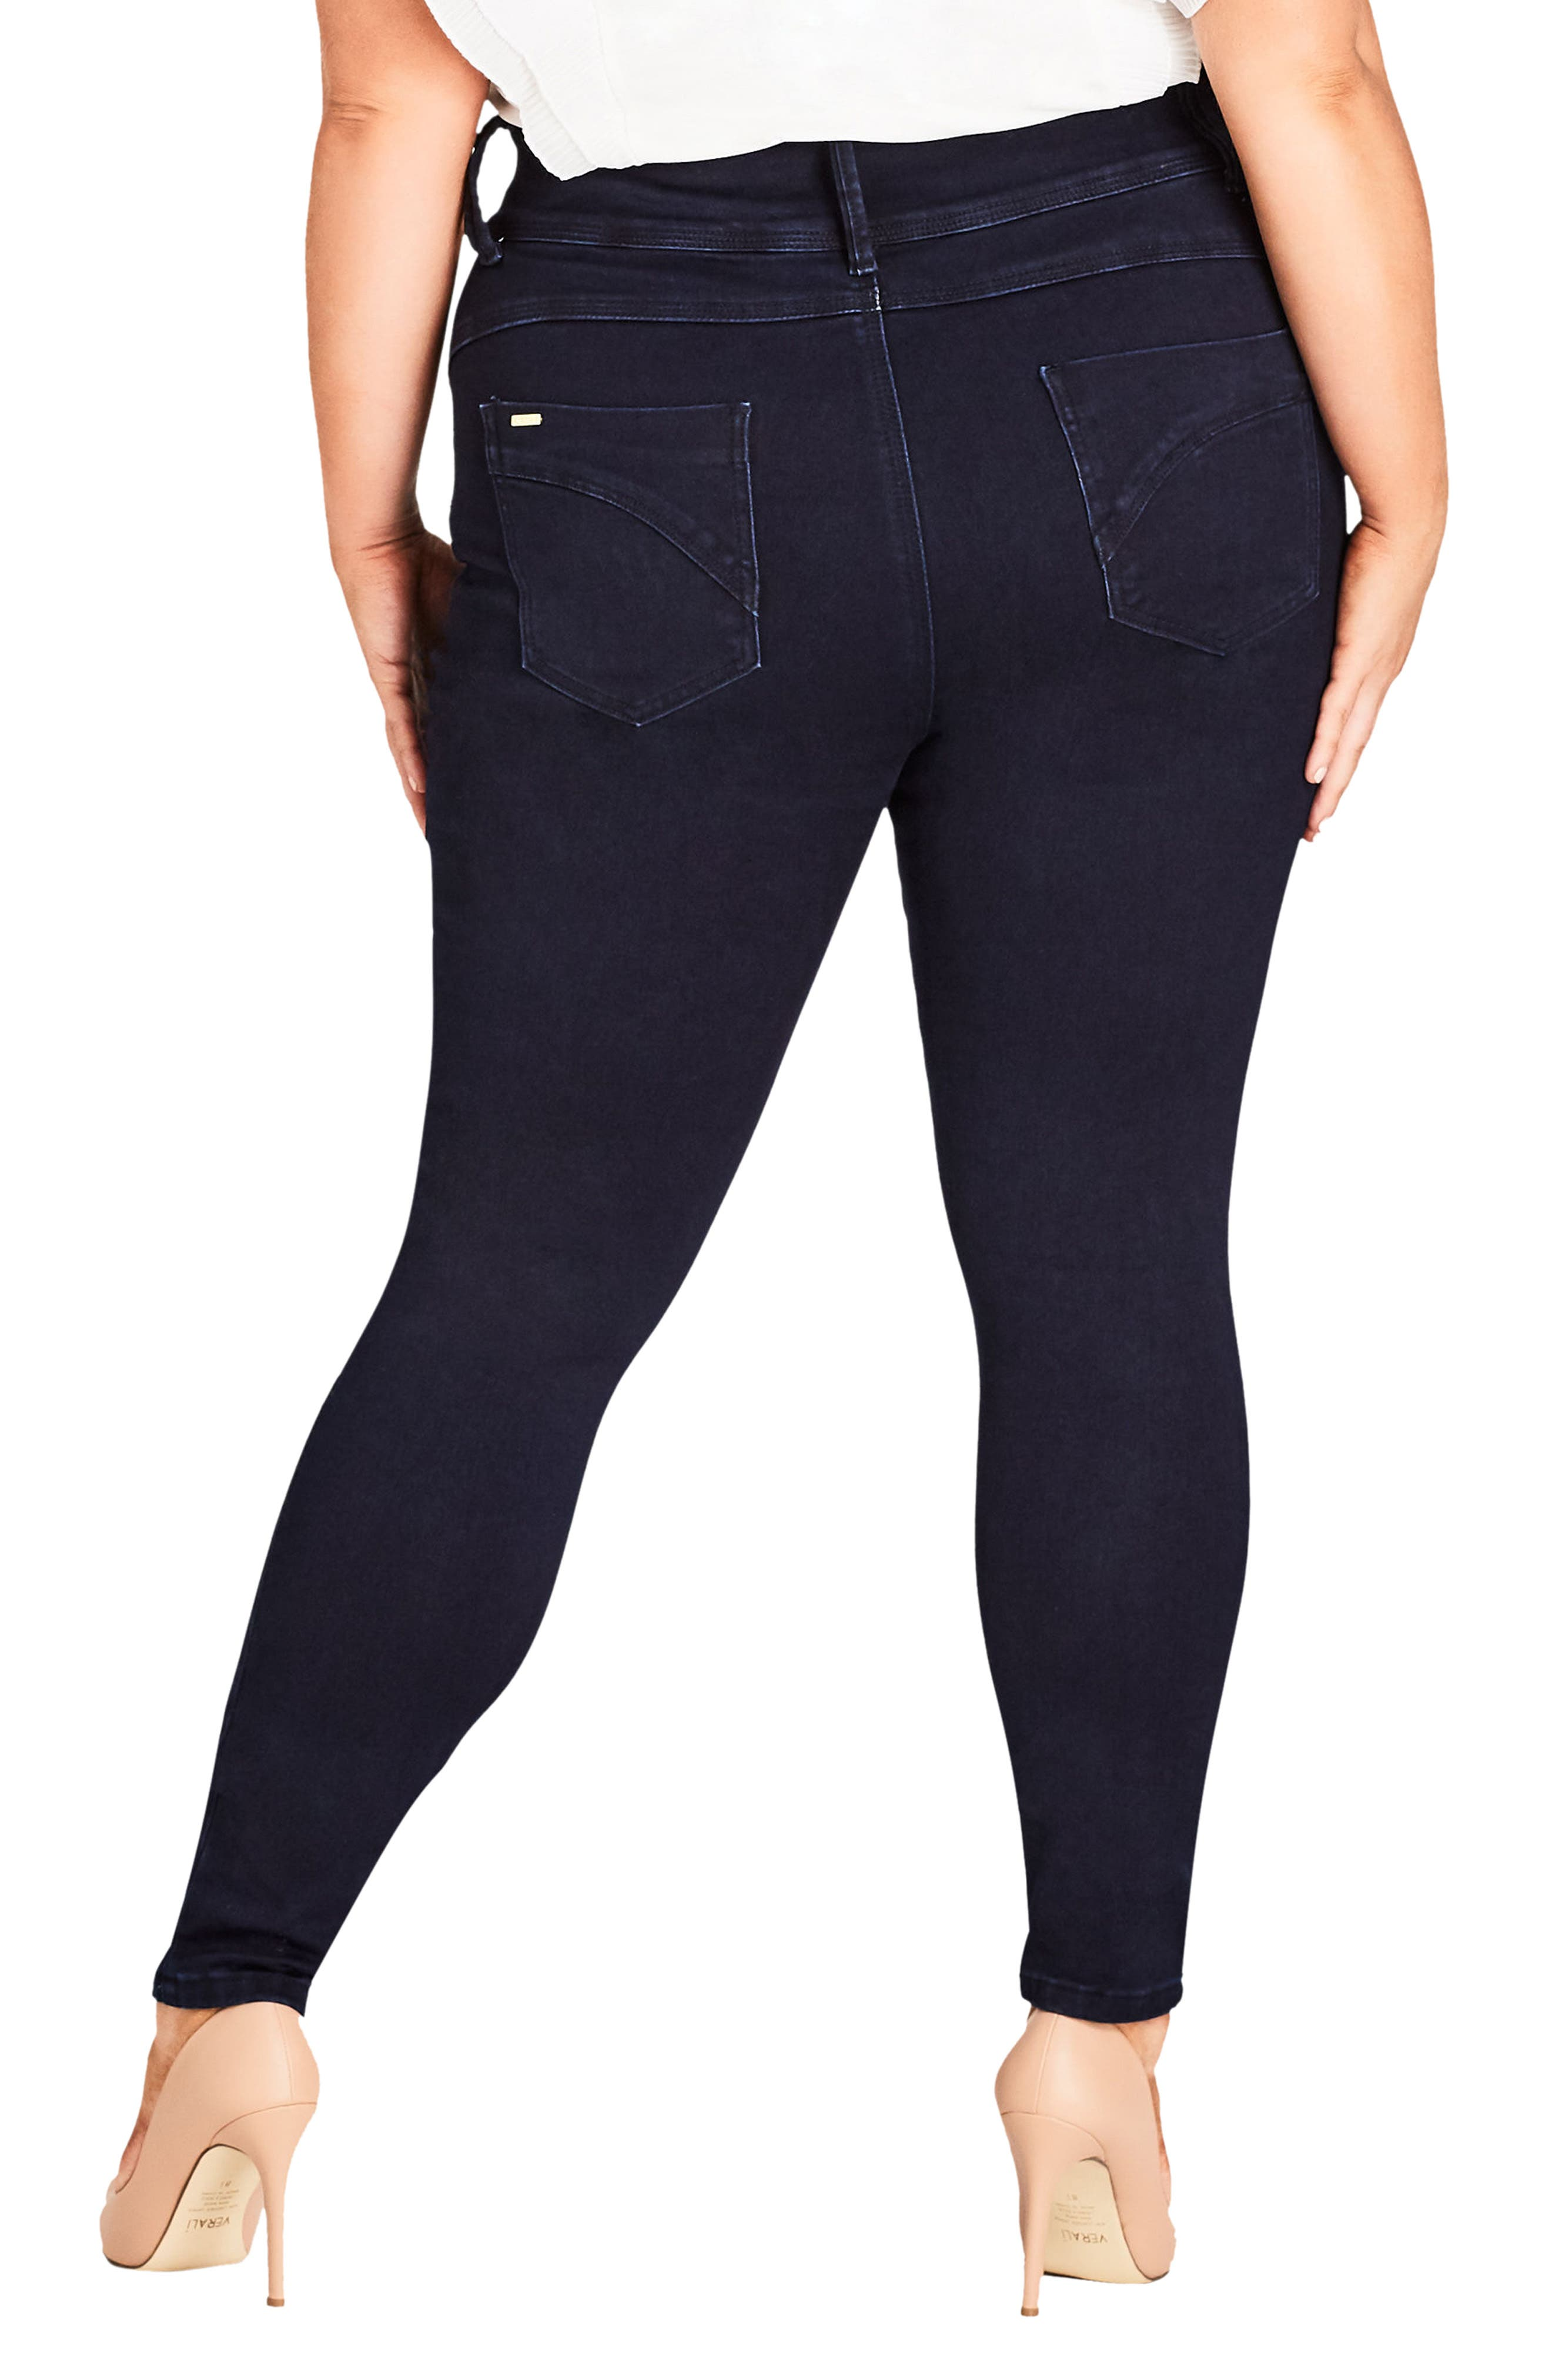 Asha Ankle Skinny Jeans,                             Alternate thumbnail 2, color,                             DARK DENIM